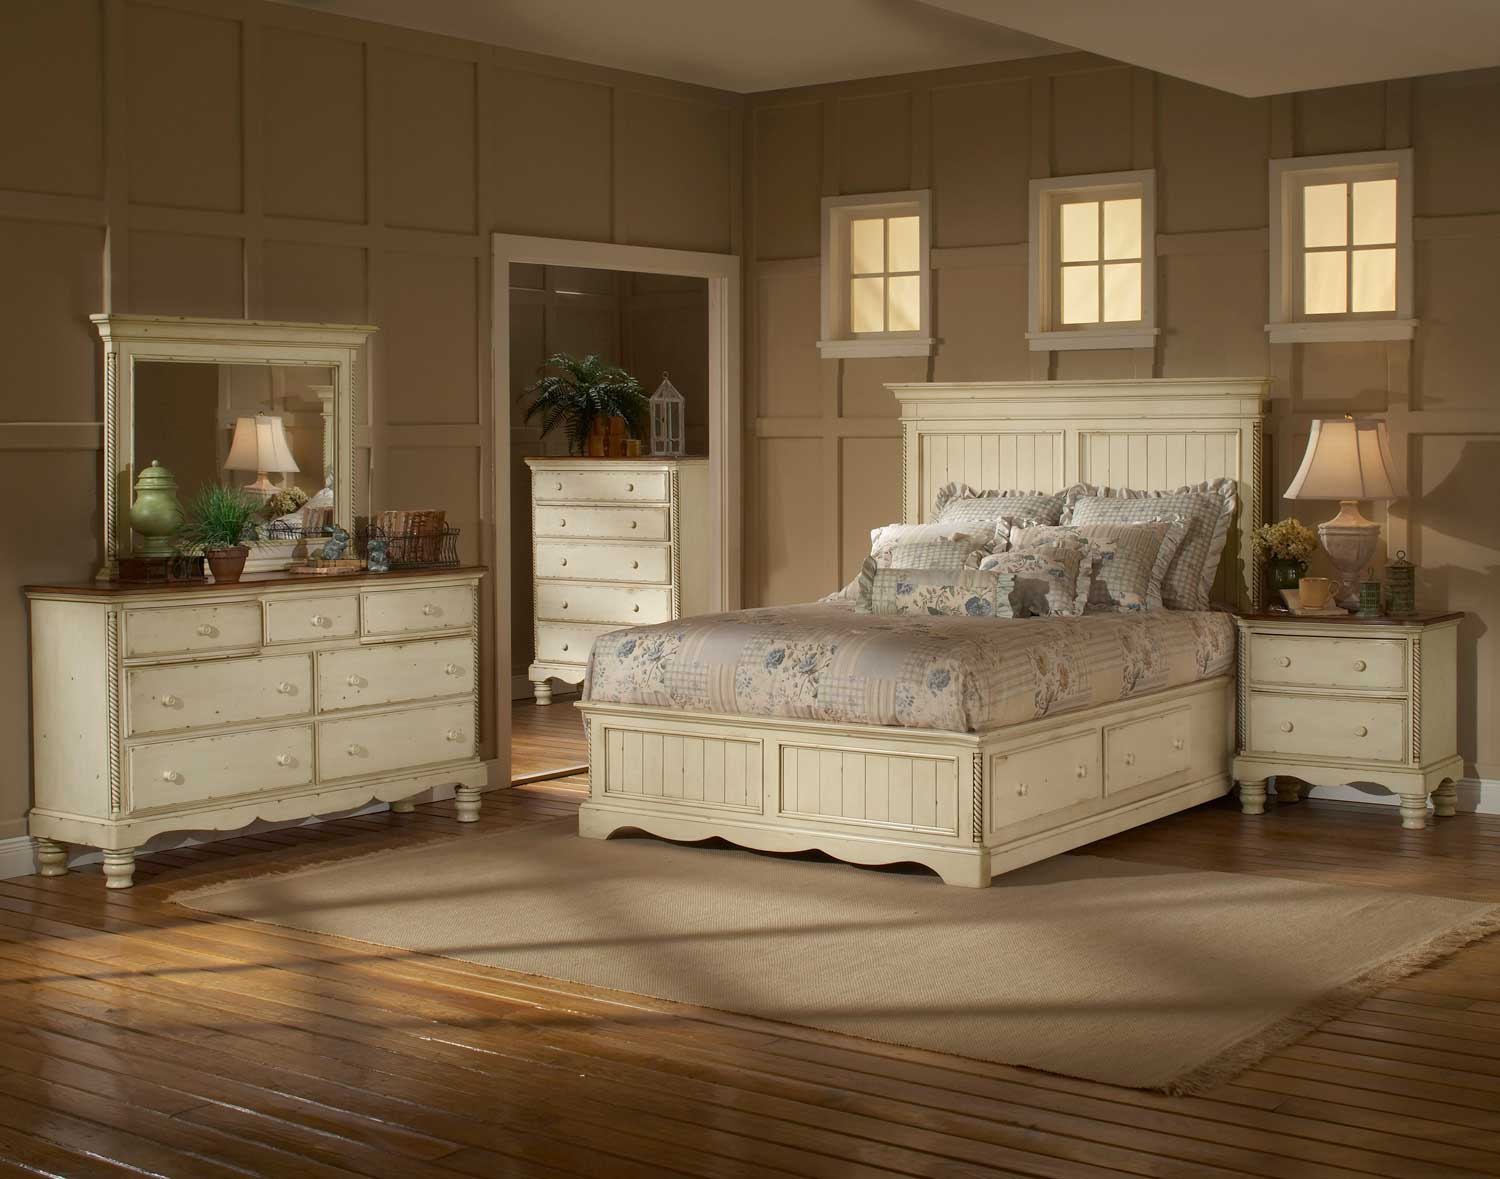 Bedroom Sets For Less